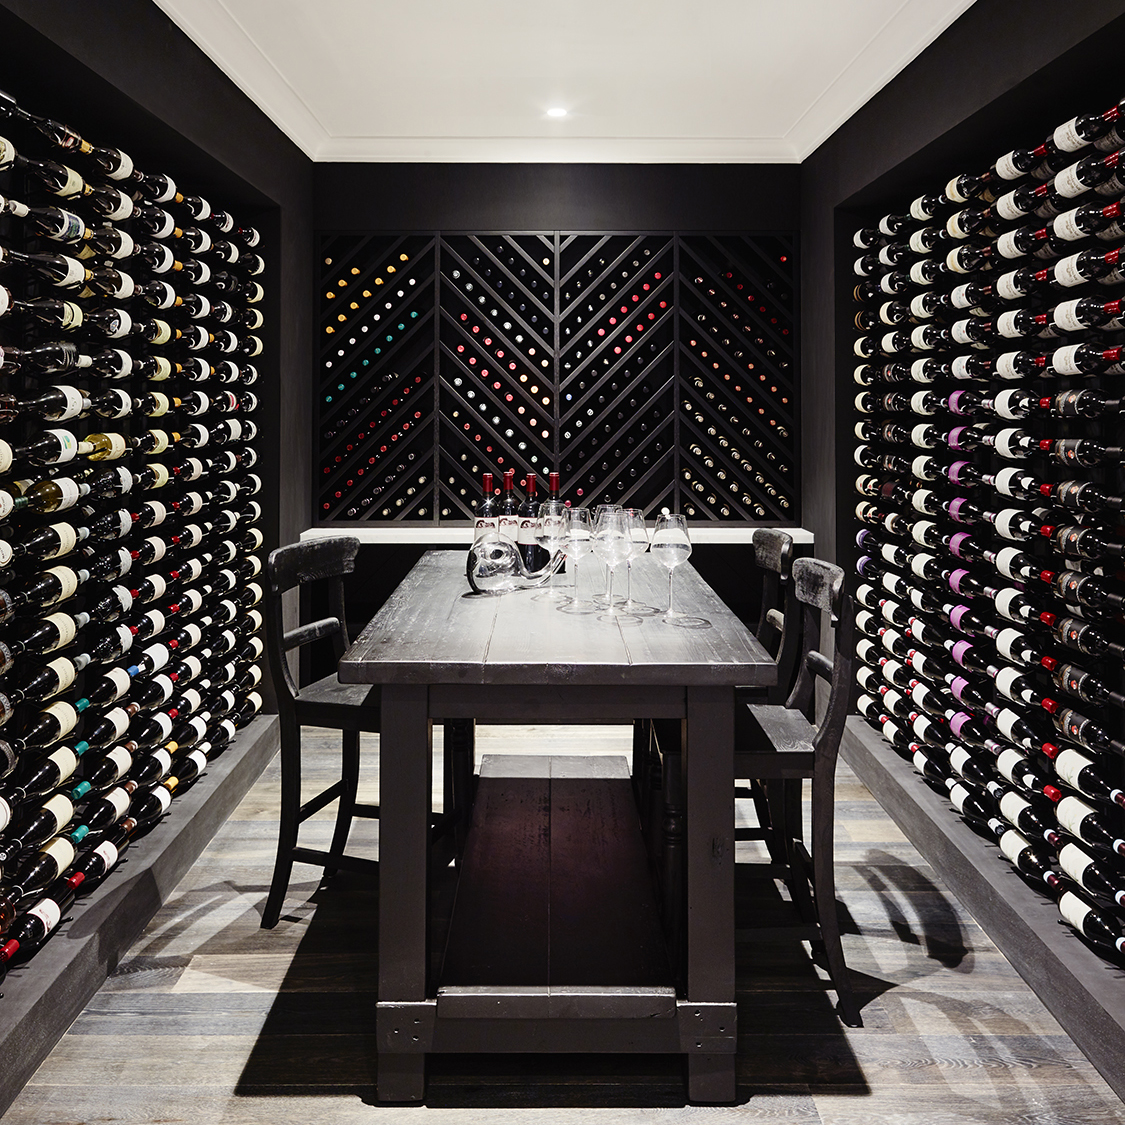 Black wine cellar with built-in wooden cabinets, designed by Greg Natale. Image: Instagram